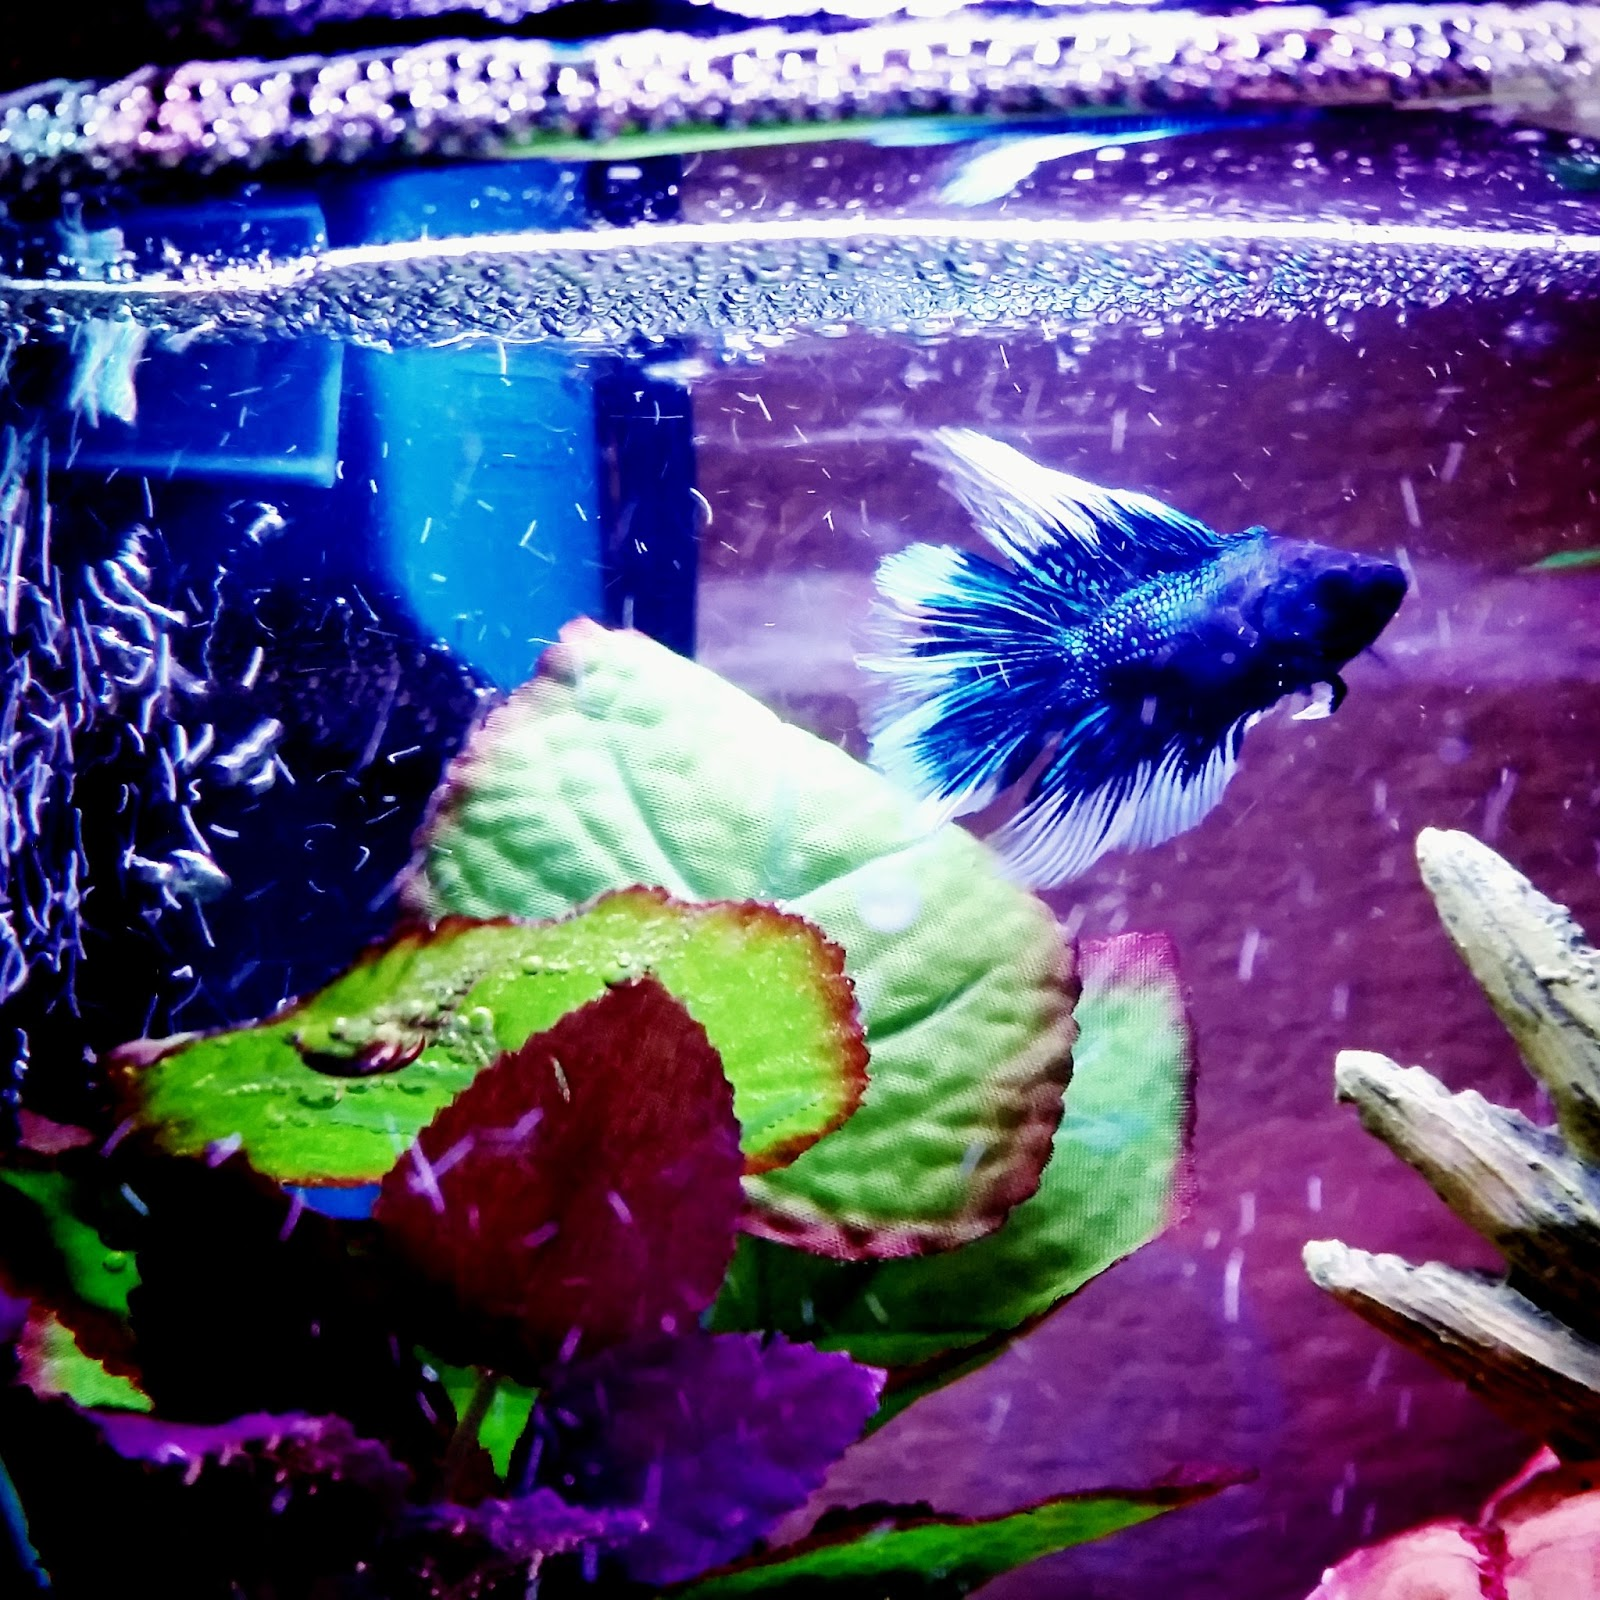 Freshwater aquarium fish no heater - Butterfly Betta Fish Living In Tank With A Heater And Filter